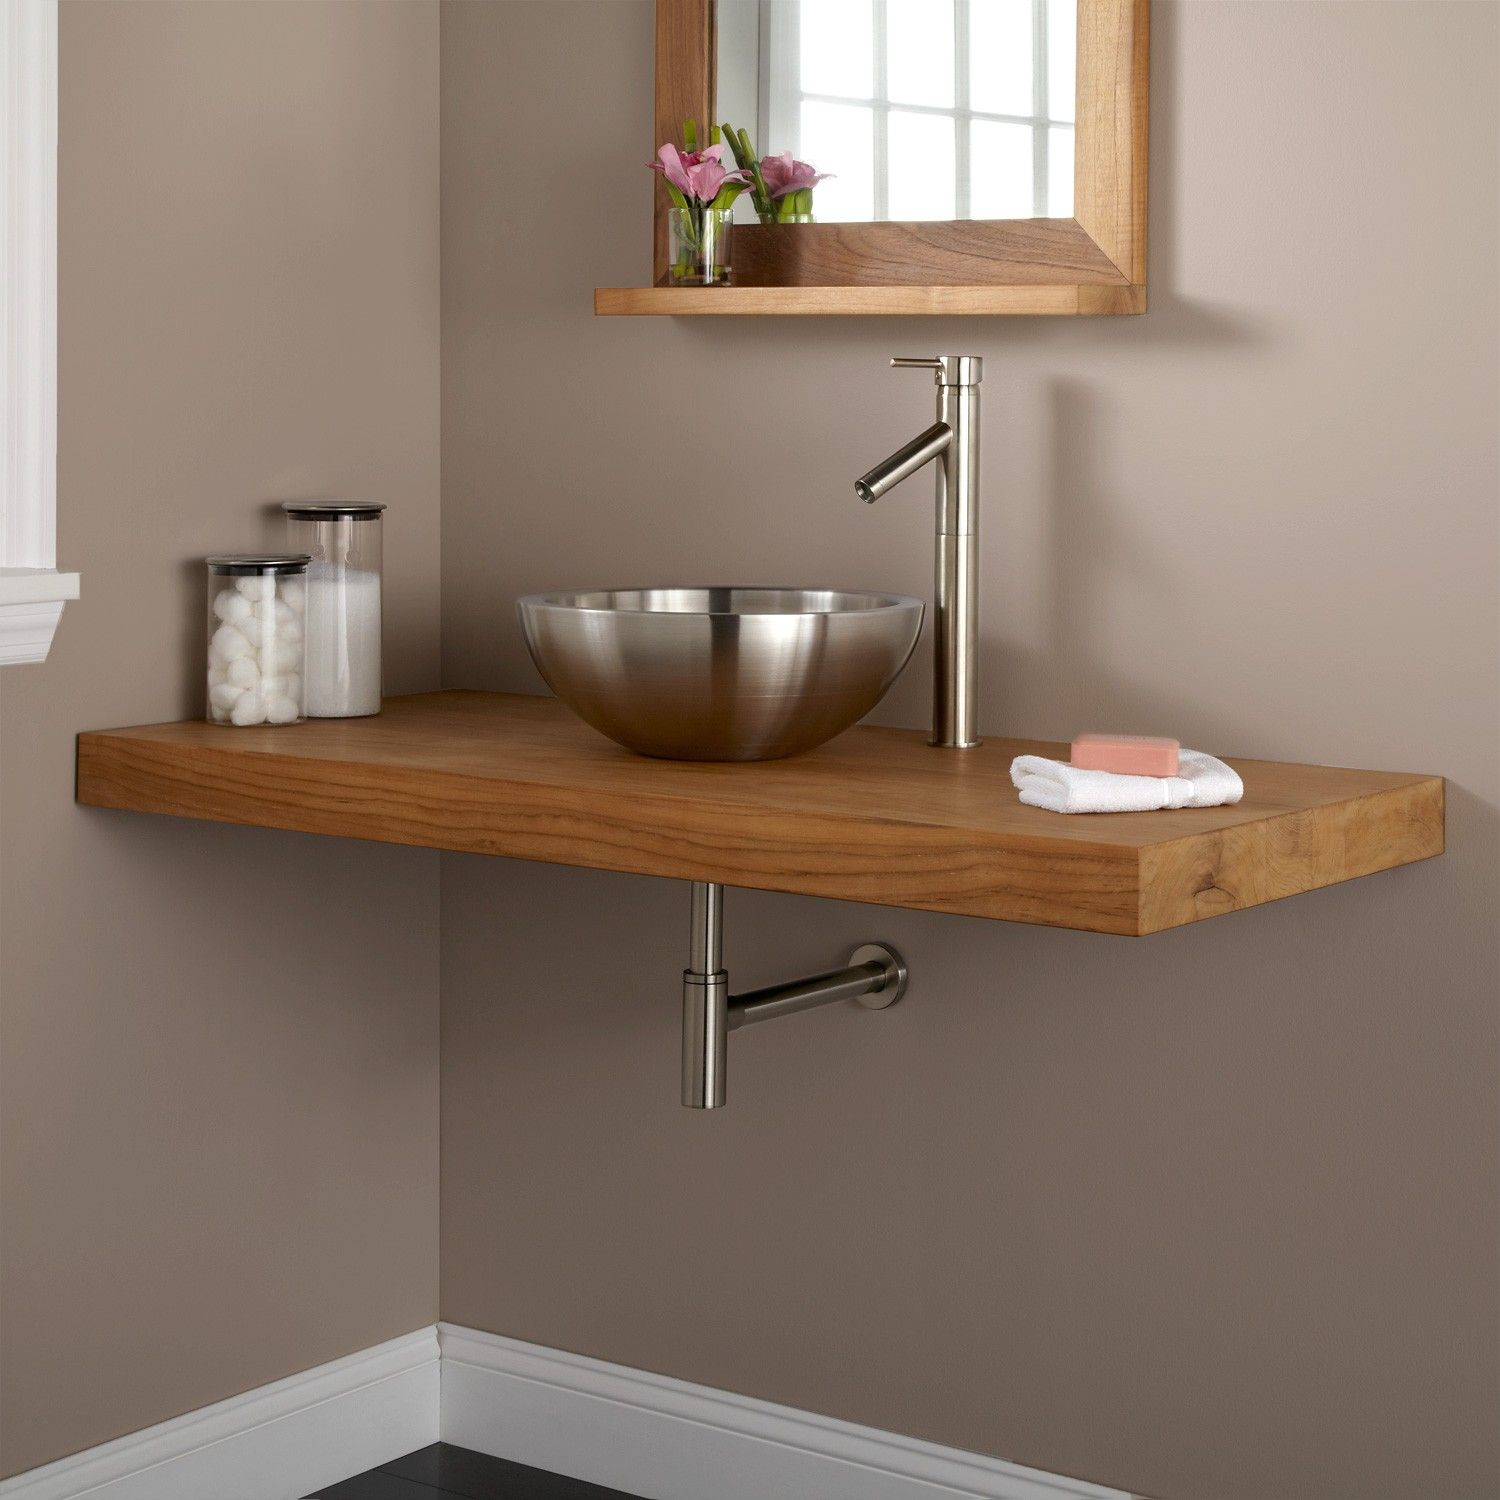 Wall Mount Vanity Top For Vessel Sink   Custom Made Smaller In Quarter Sawn  Oak